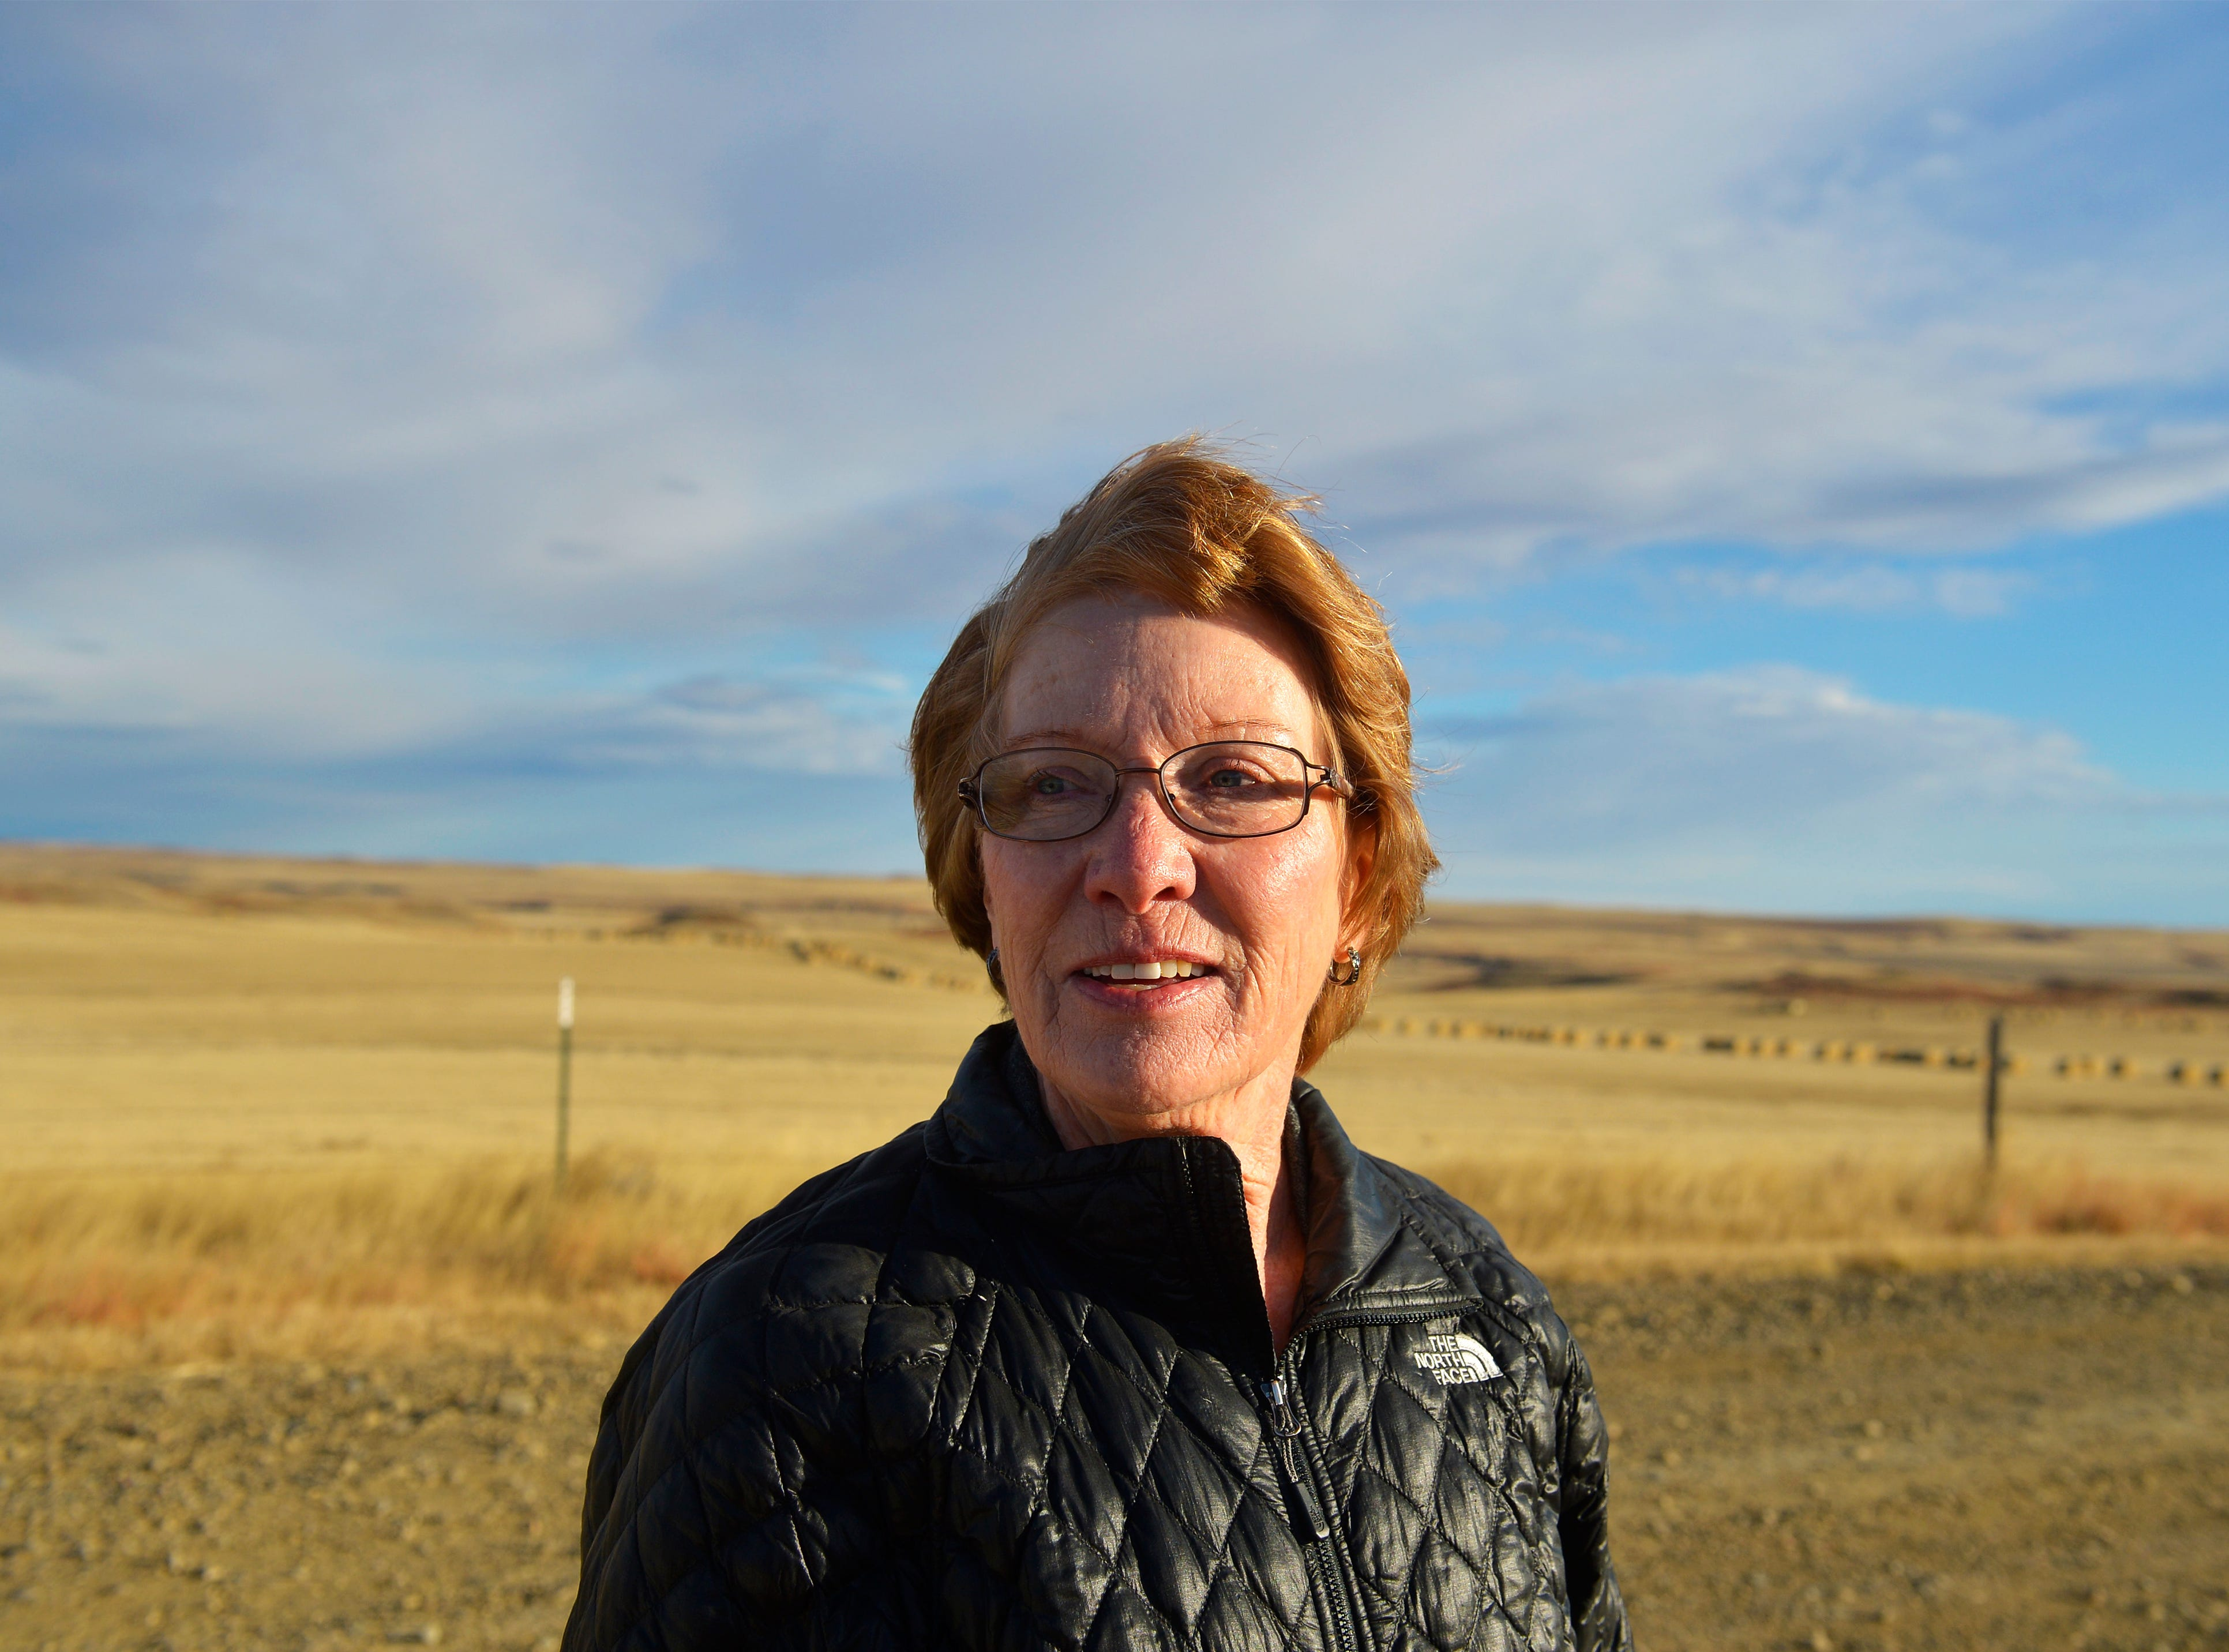 McCone County rancher Janet Wolff has granted TransCanada an easement for the Keystone XL Pipeline on her ranch outside of Circle, Mont.